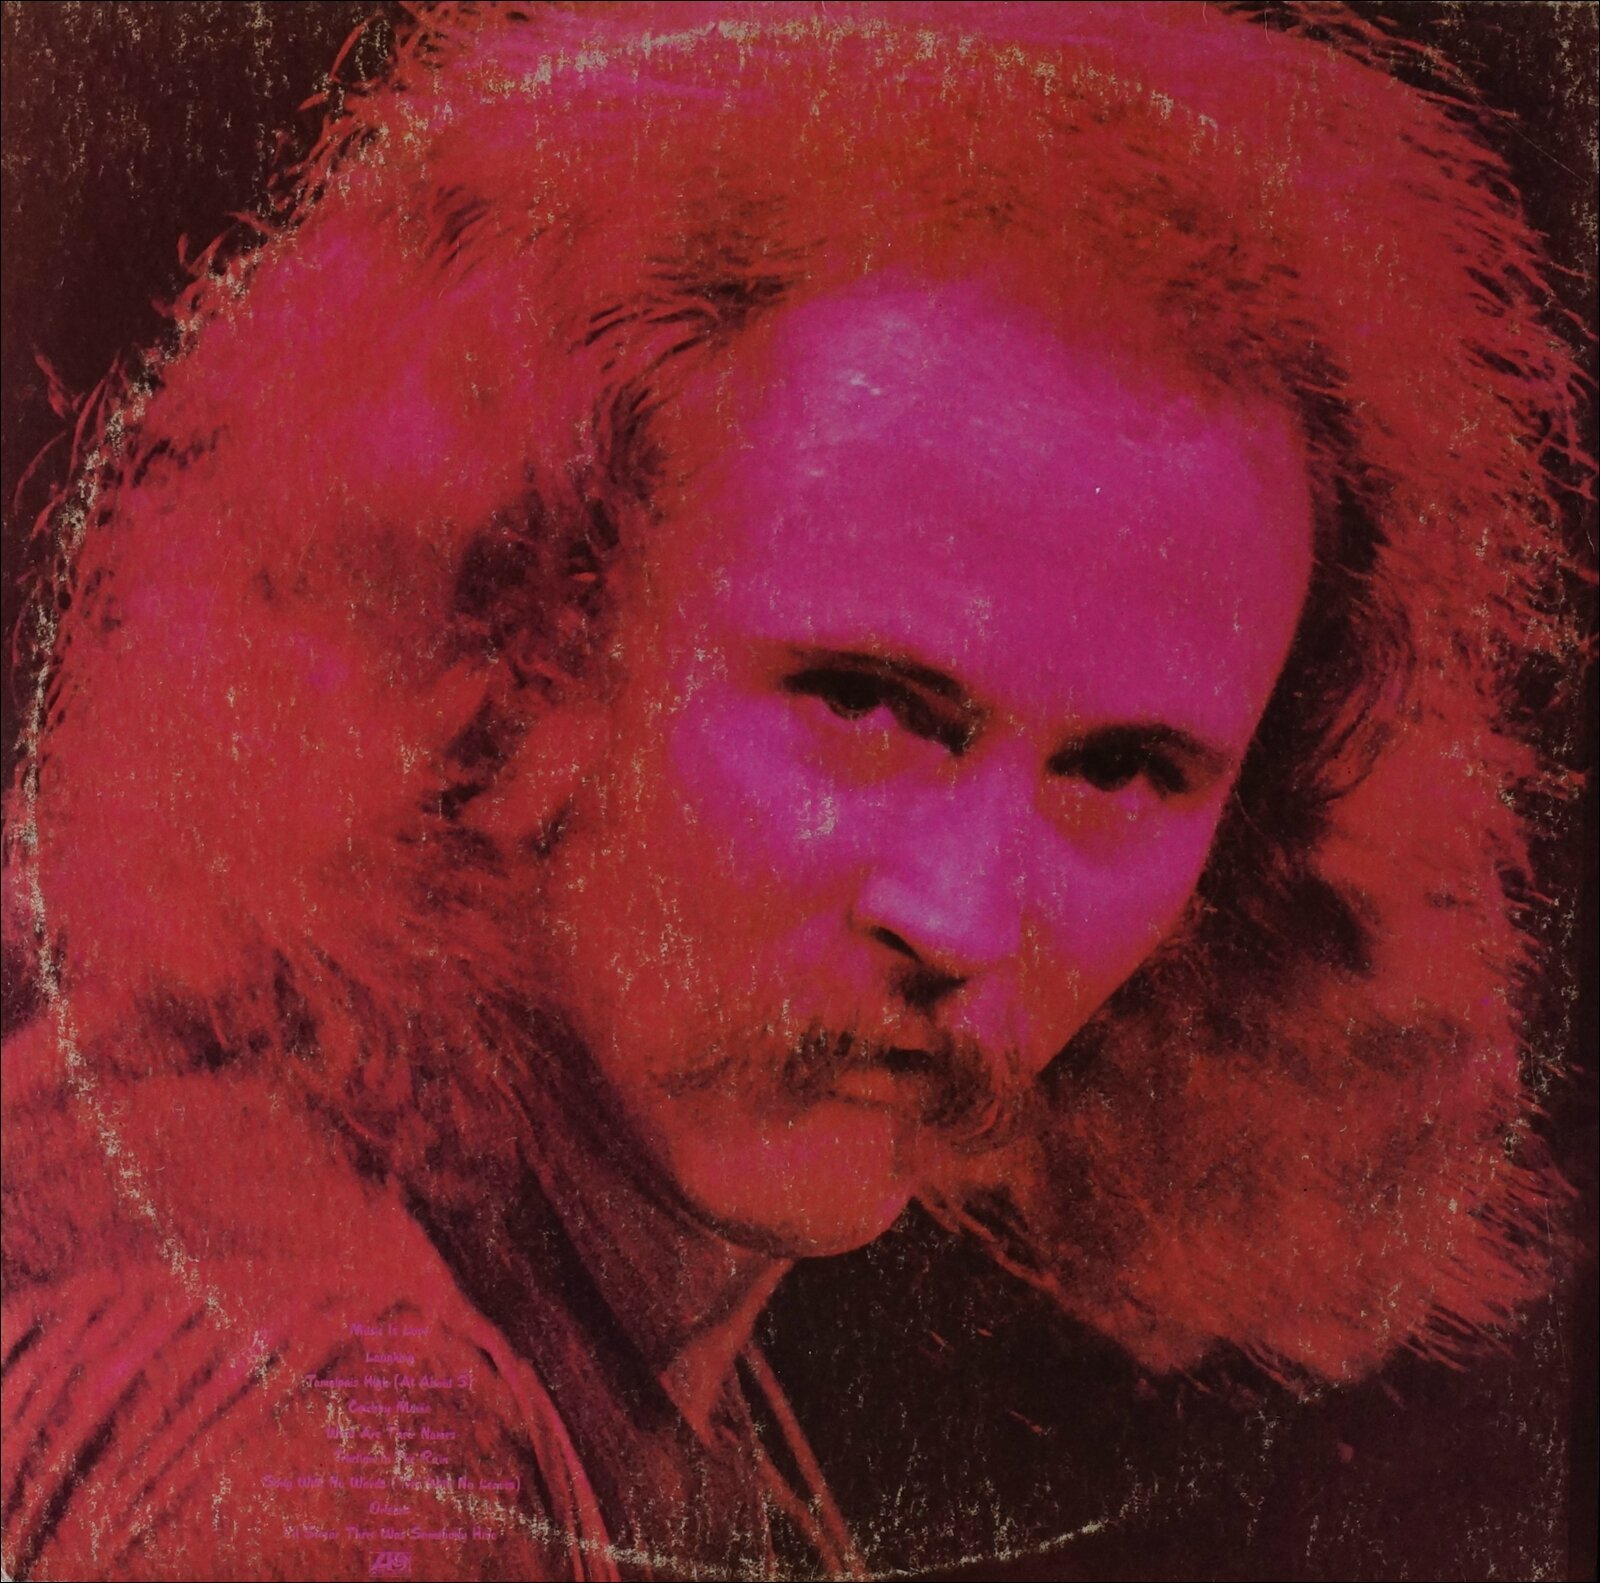 2212-david-crosby-if-i-could-only-remember-my-name-ausback